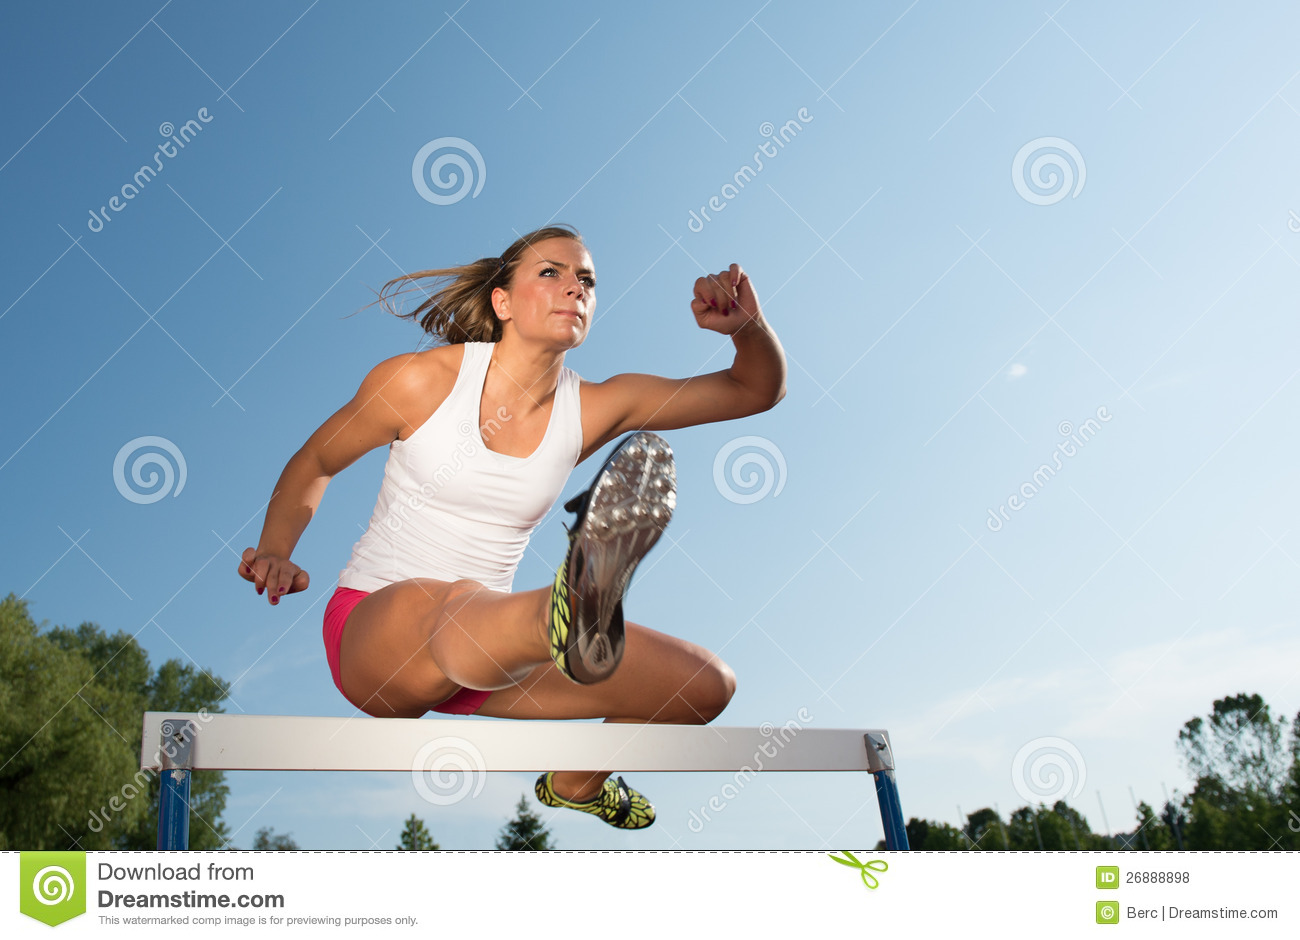 Professional Female Hurdler In Action Stock Photo Image